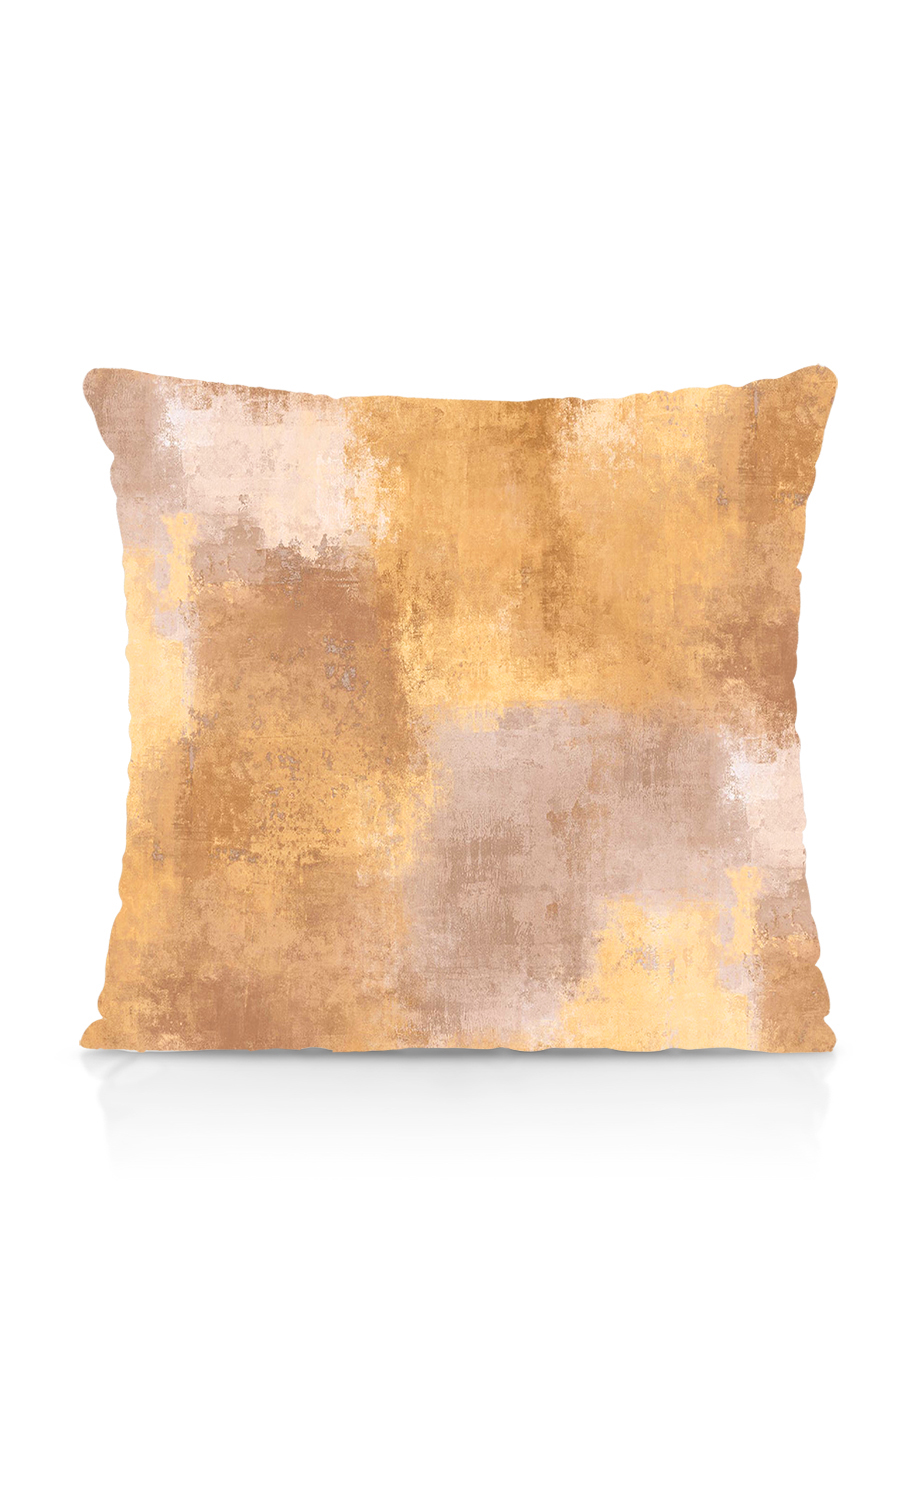 Printed Abstract Custom Knife Edge Cushions Cover